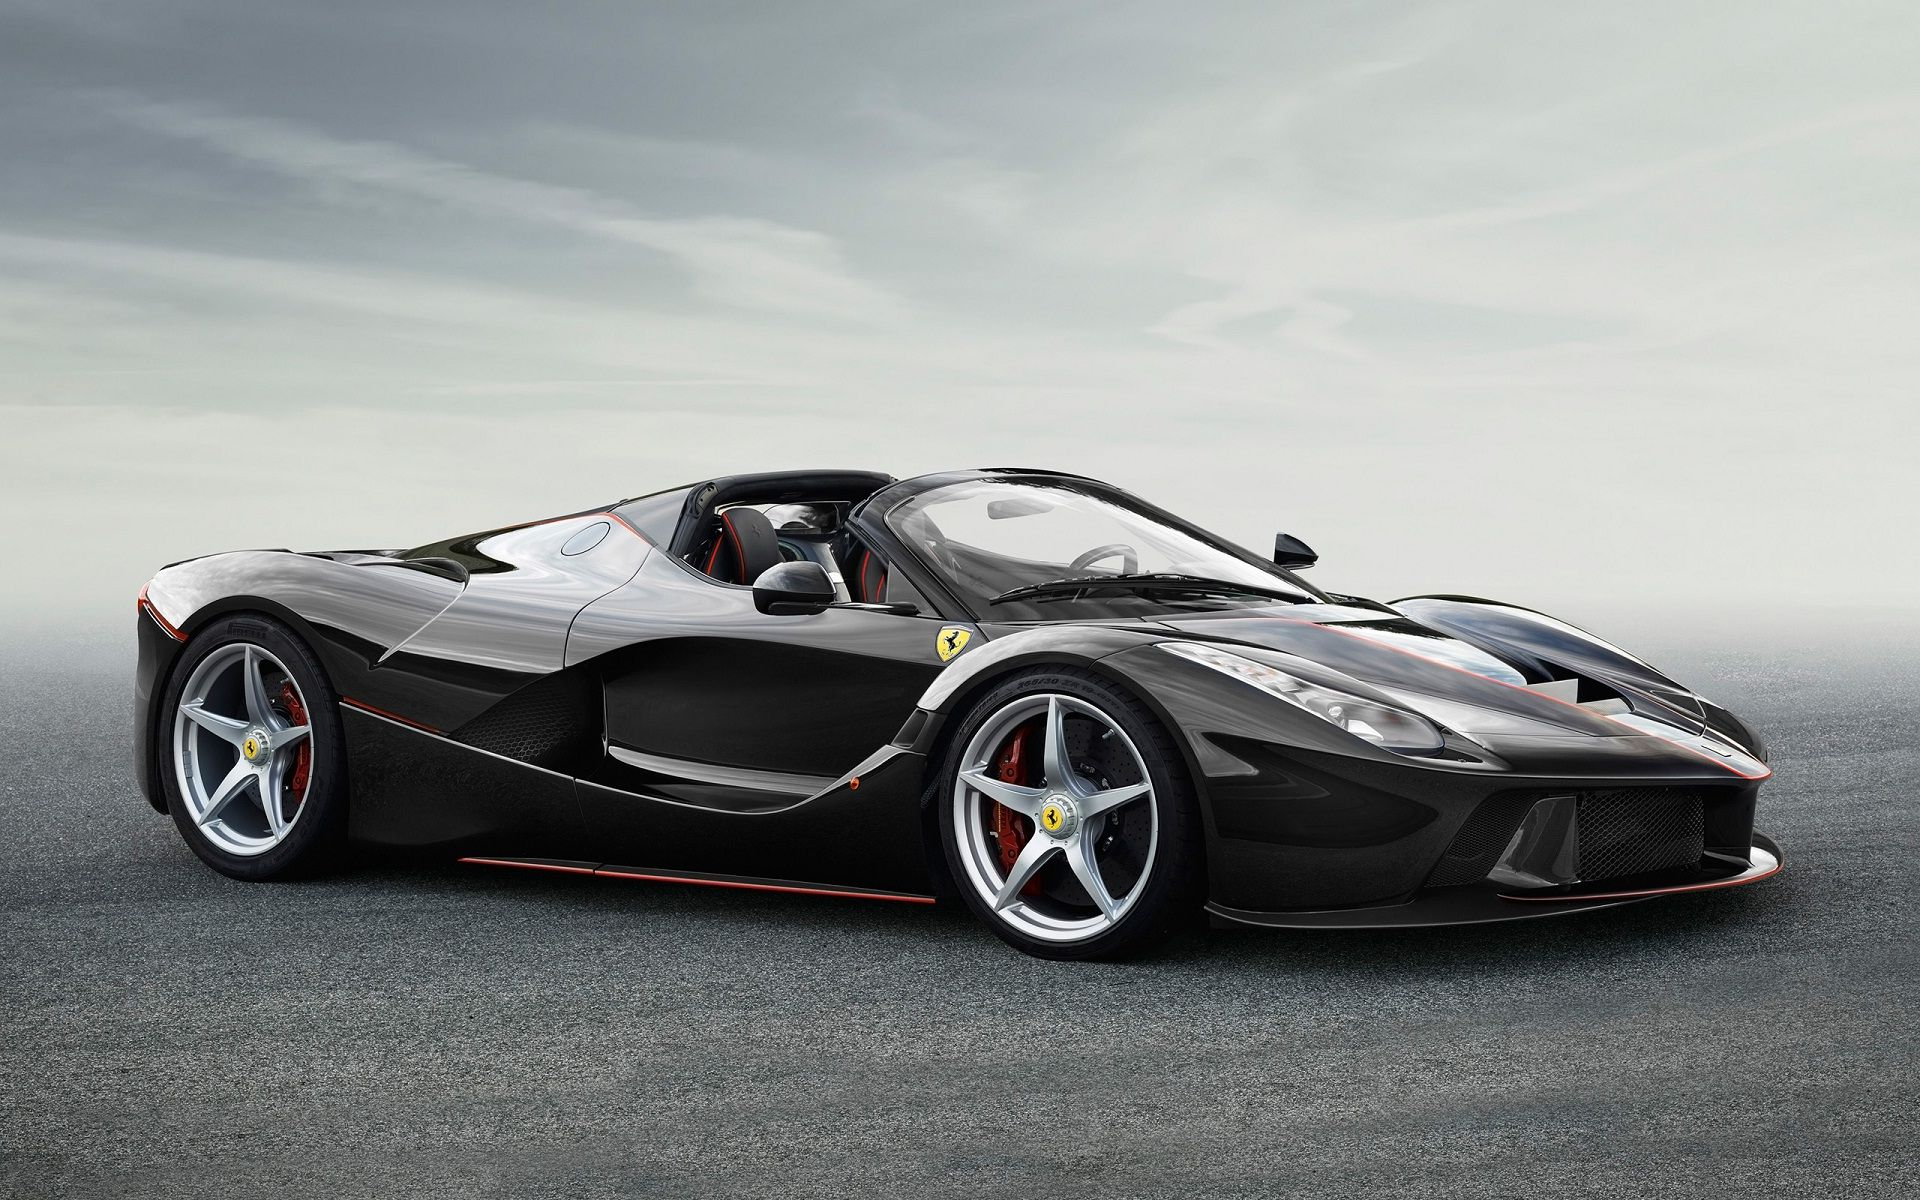 Ferrari Enzo Car Wallpapers One Of The Most Expensive Cars In